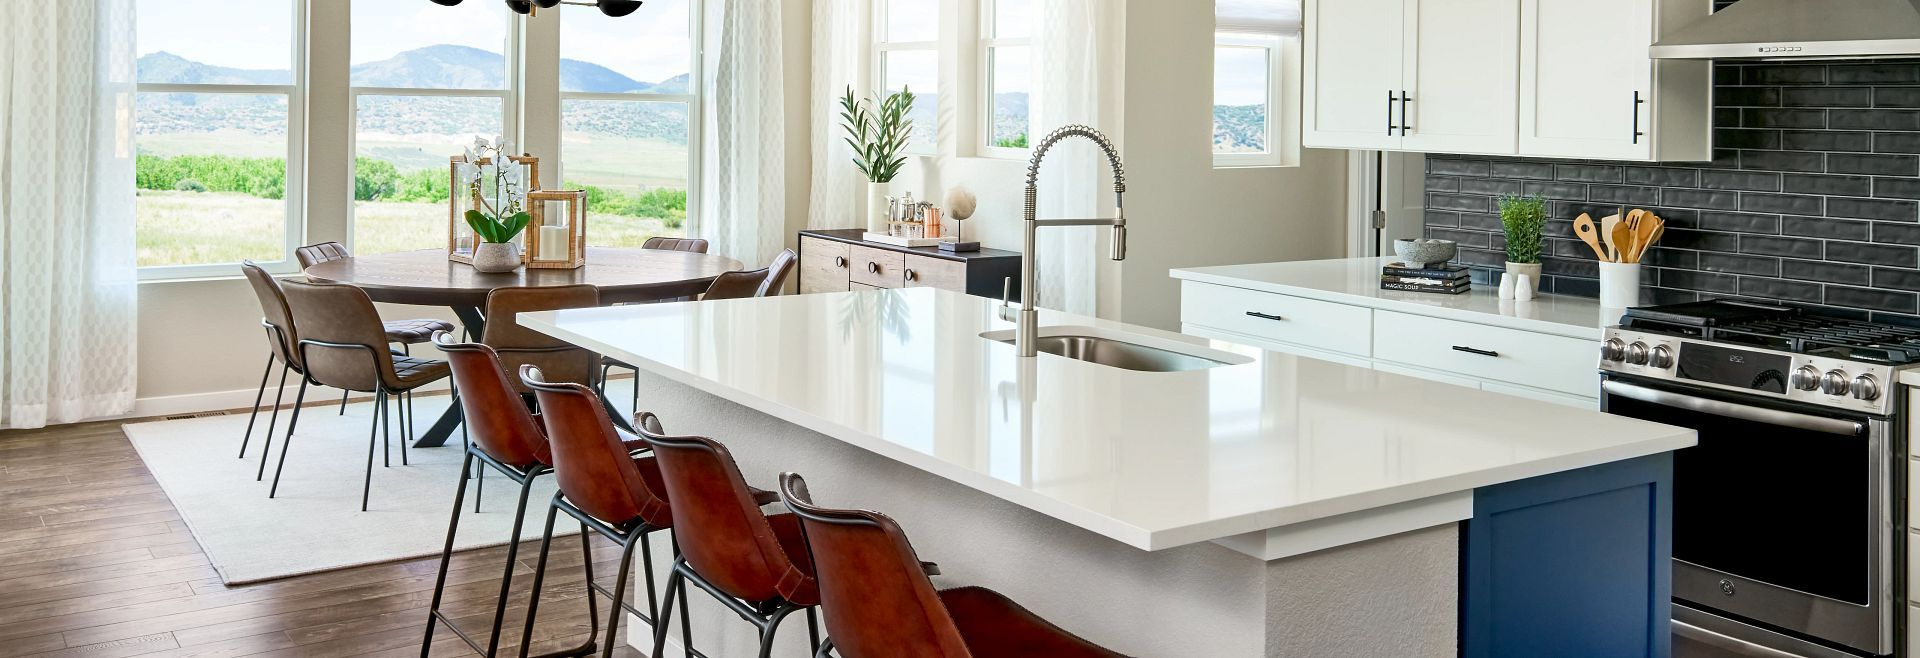 Kitchen featured in the 4052 Twilight By Shea Homes in Denver, CO